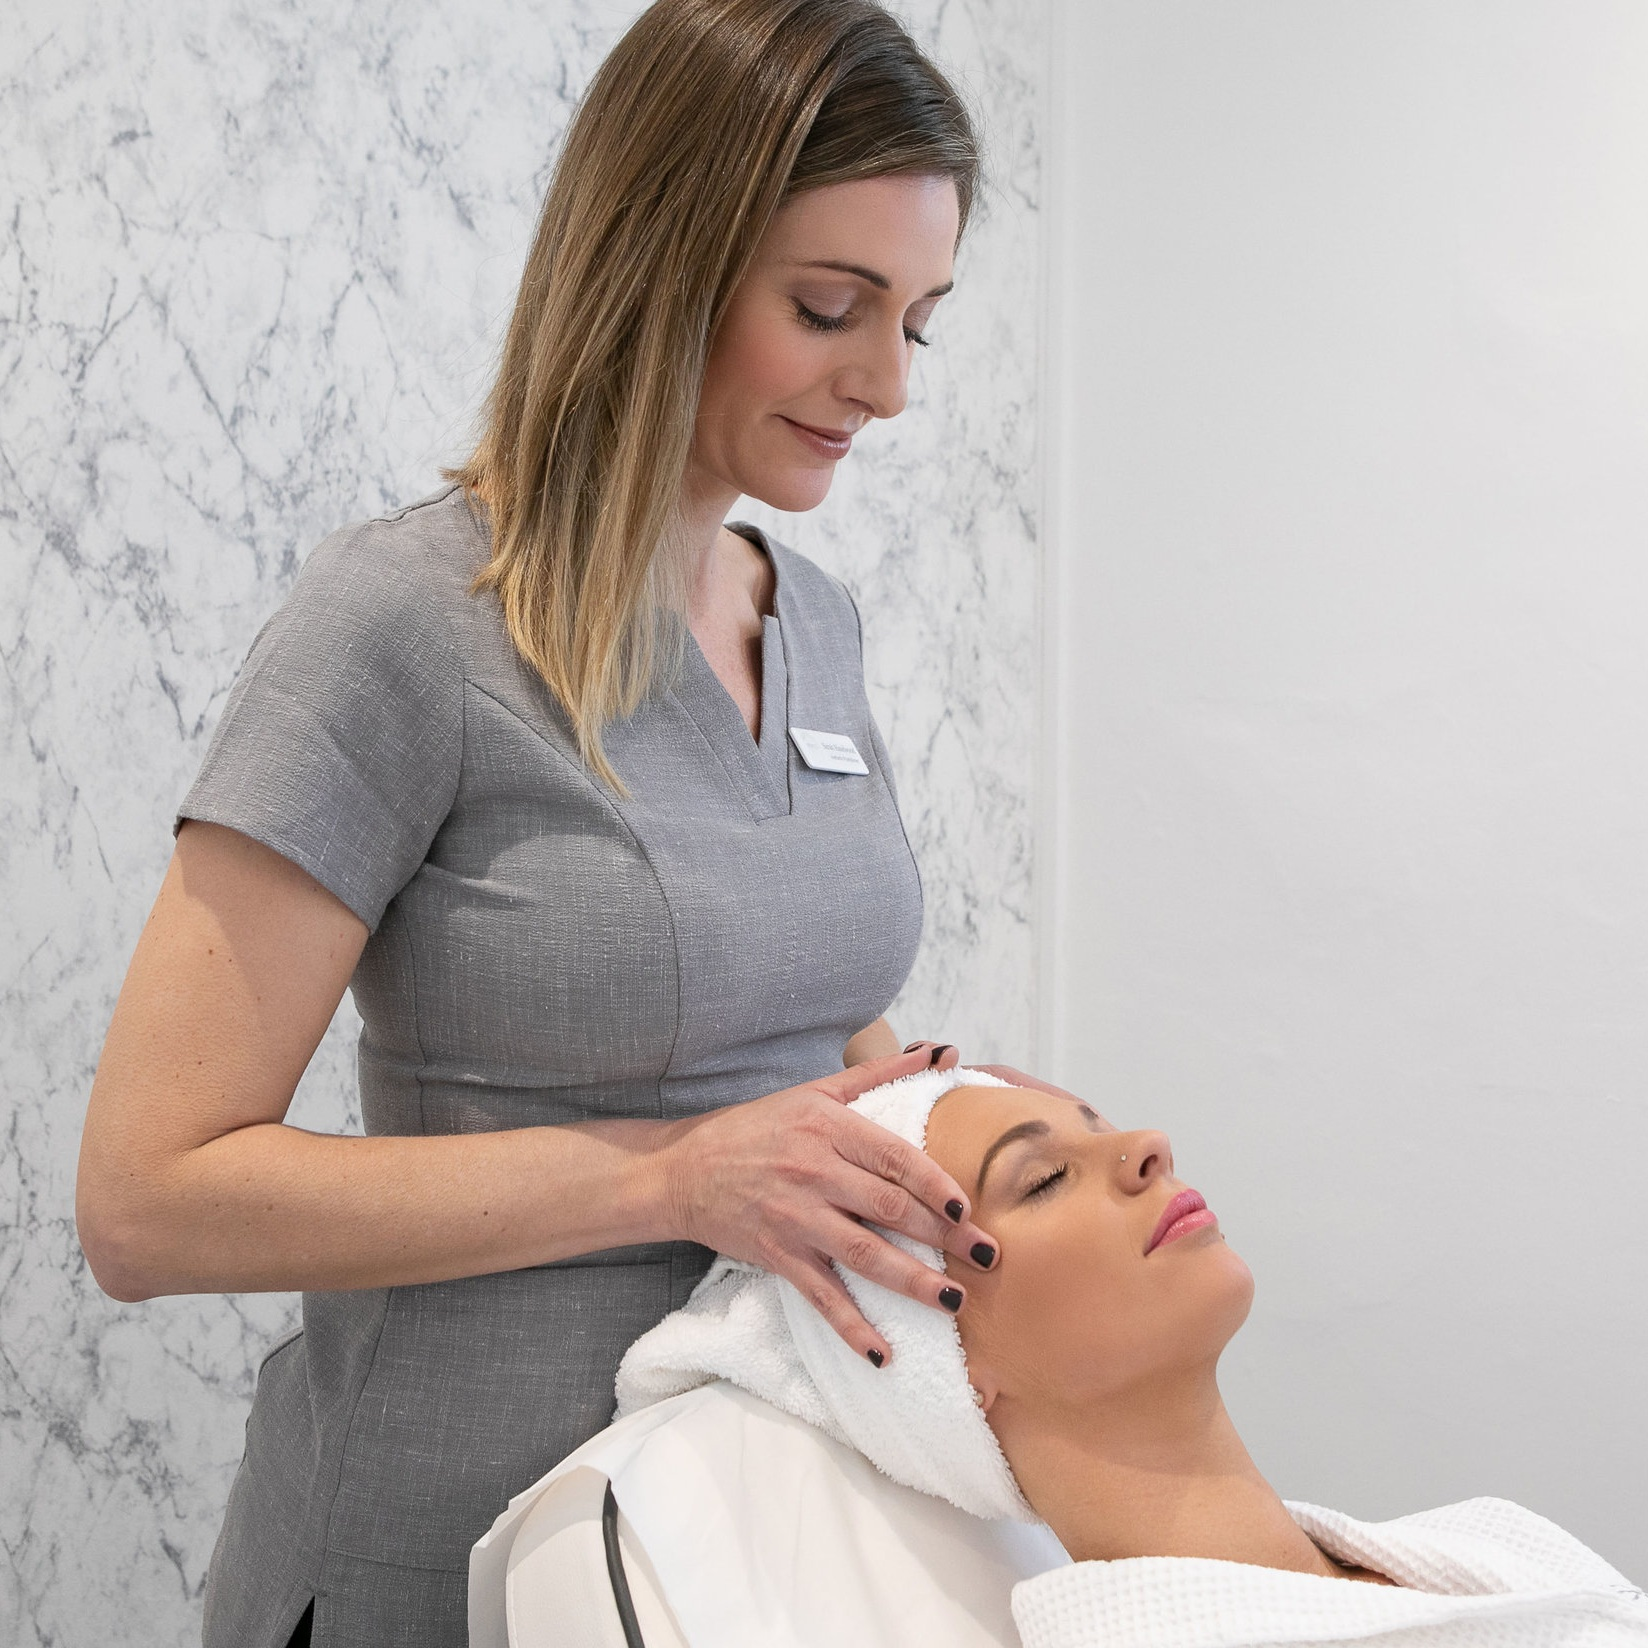 Micro-Needling - SkinPen™ - A non-invasive and clinically proven treatment to rejuvenate the skin and treat facial acne scars.